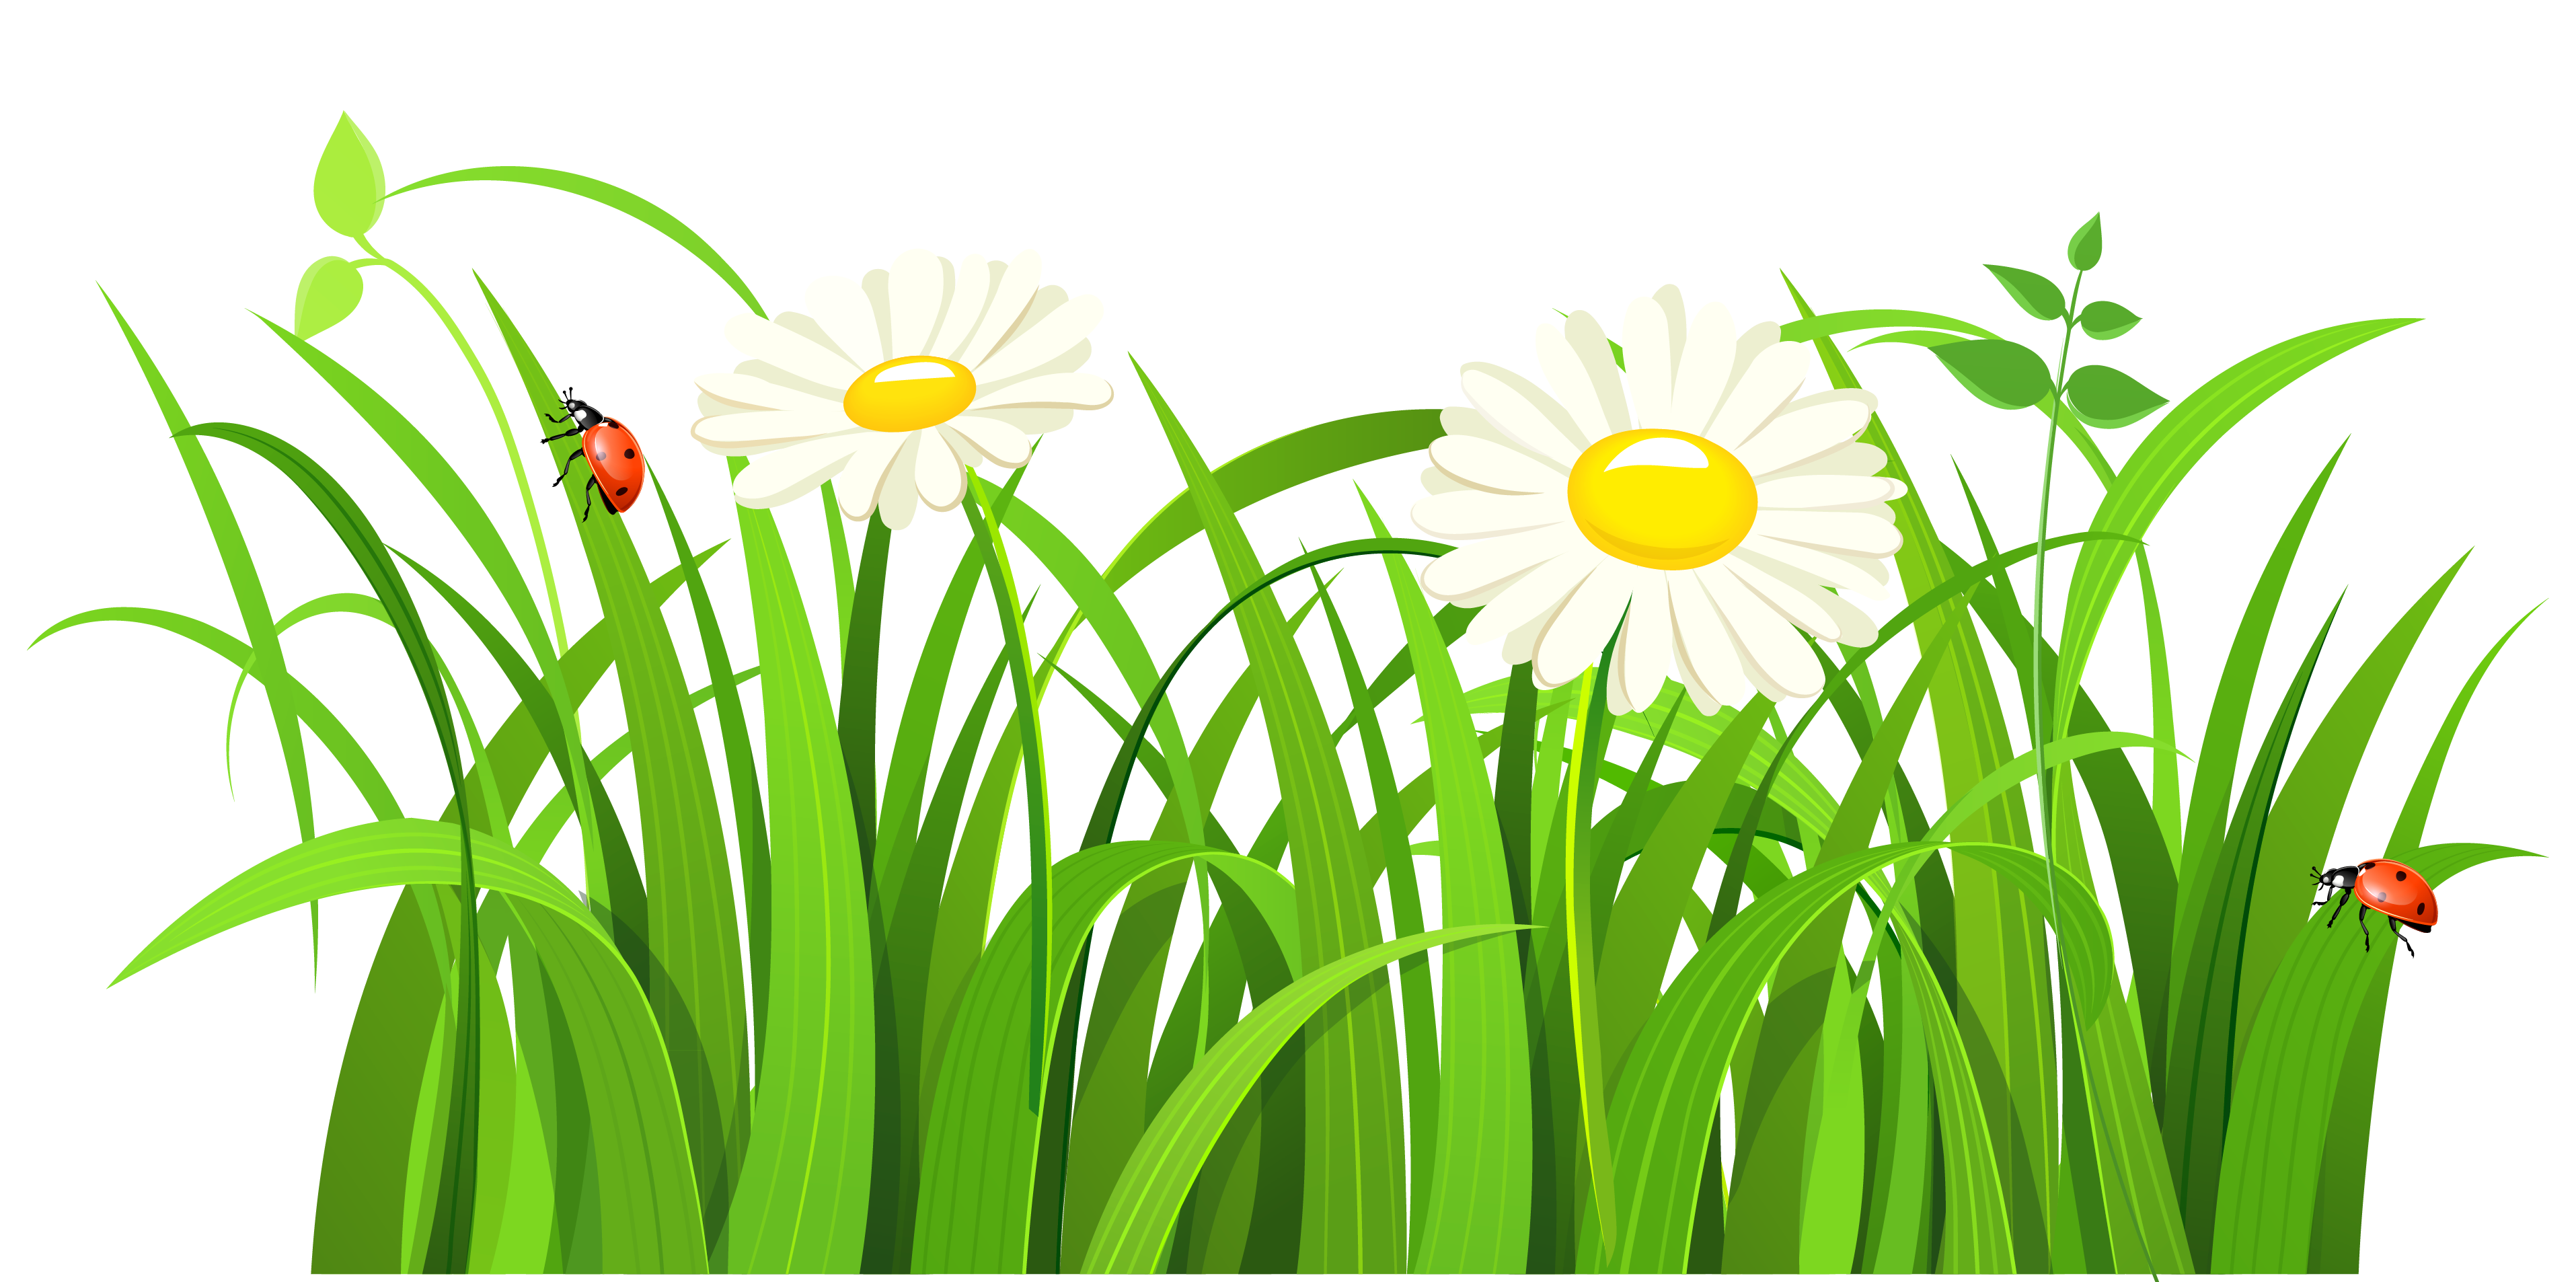 Flower meadow clipart jpg freeuse stock Grass clip art free free clipart image 5 | Floral Delight ... jpg freeuse stock